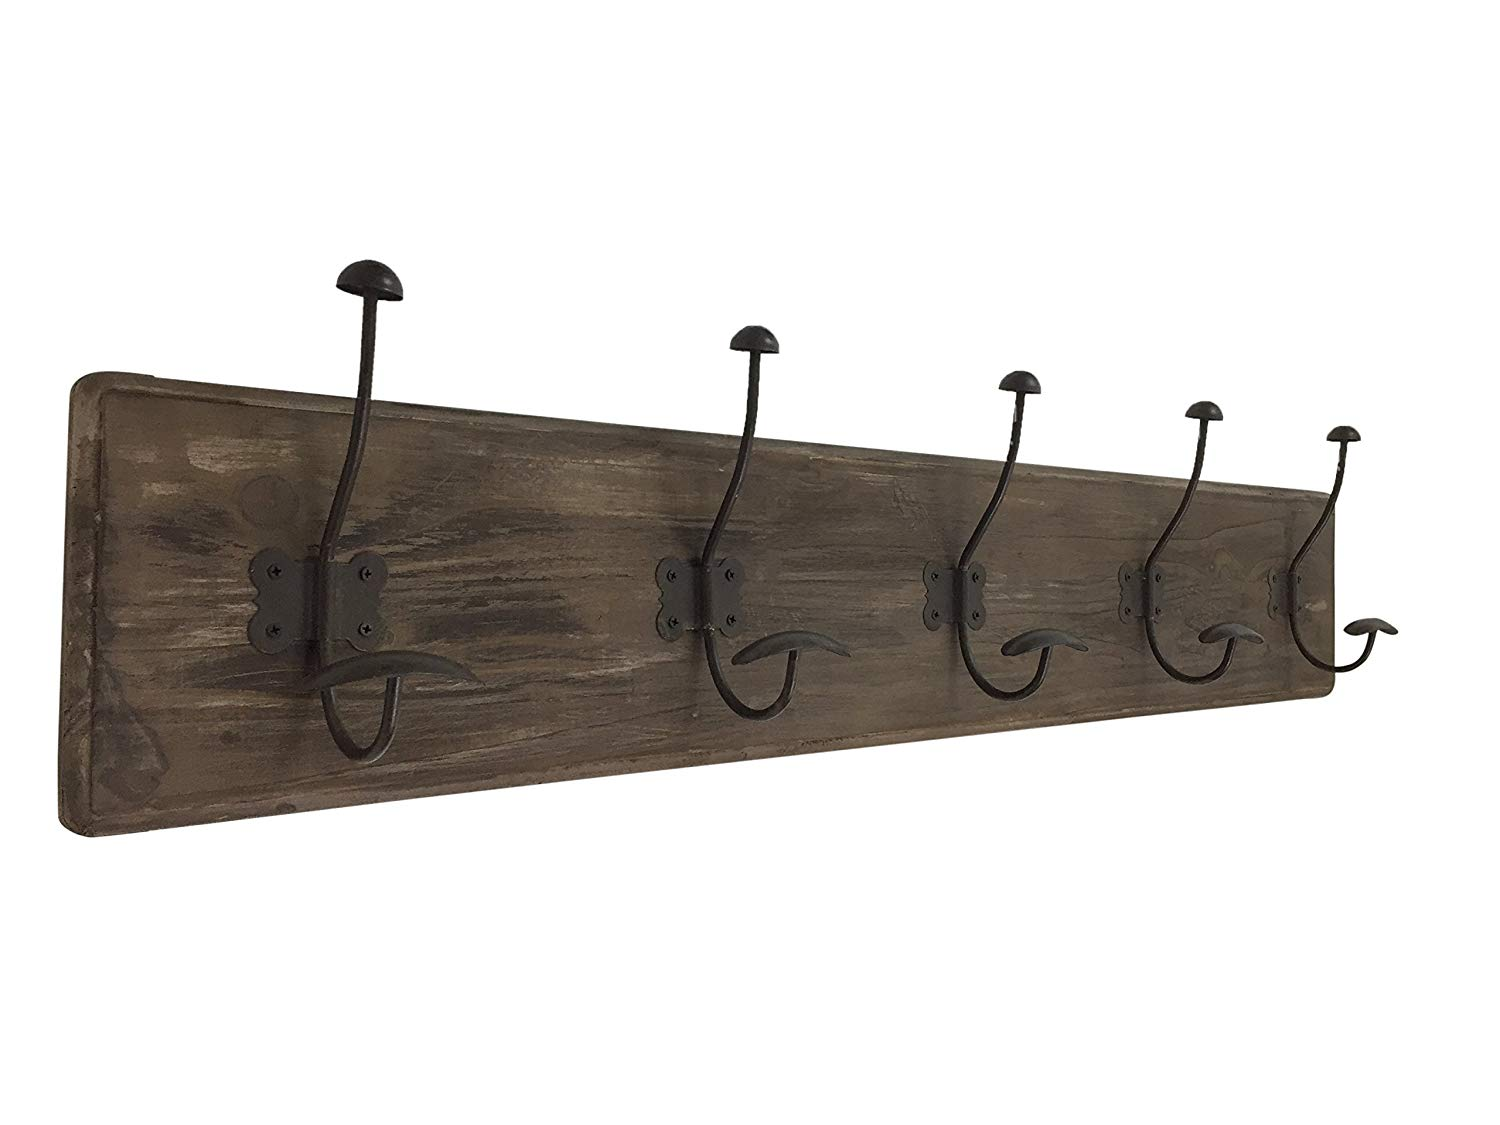 Rustic Coat Rack with Hooks